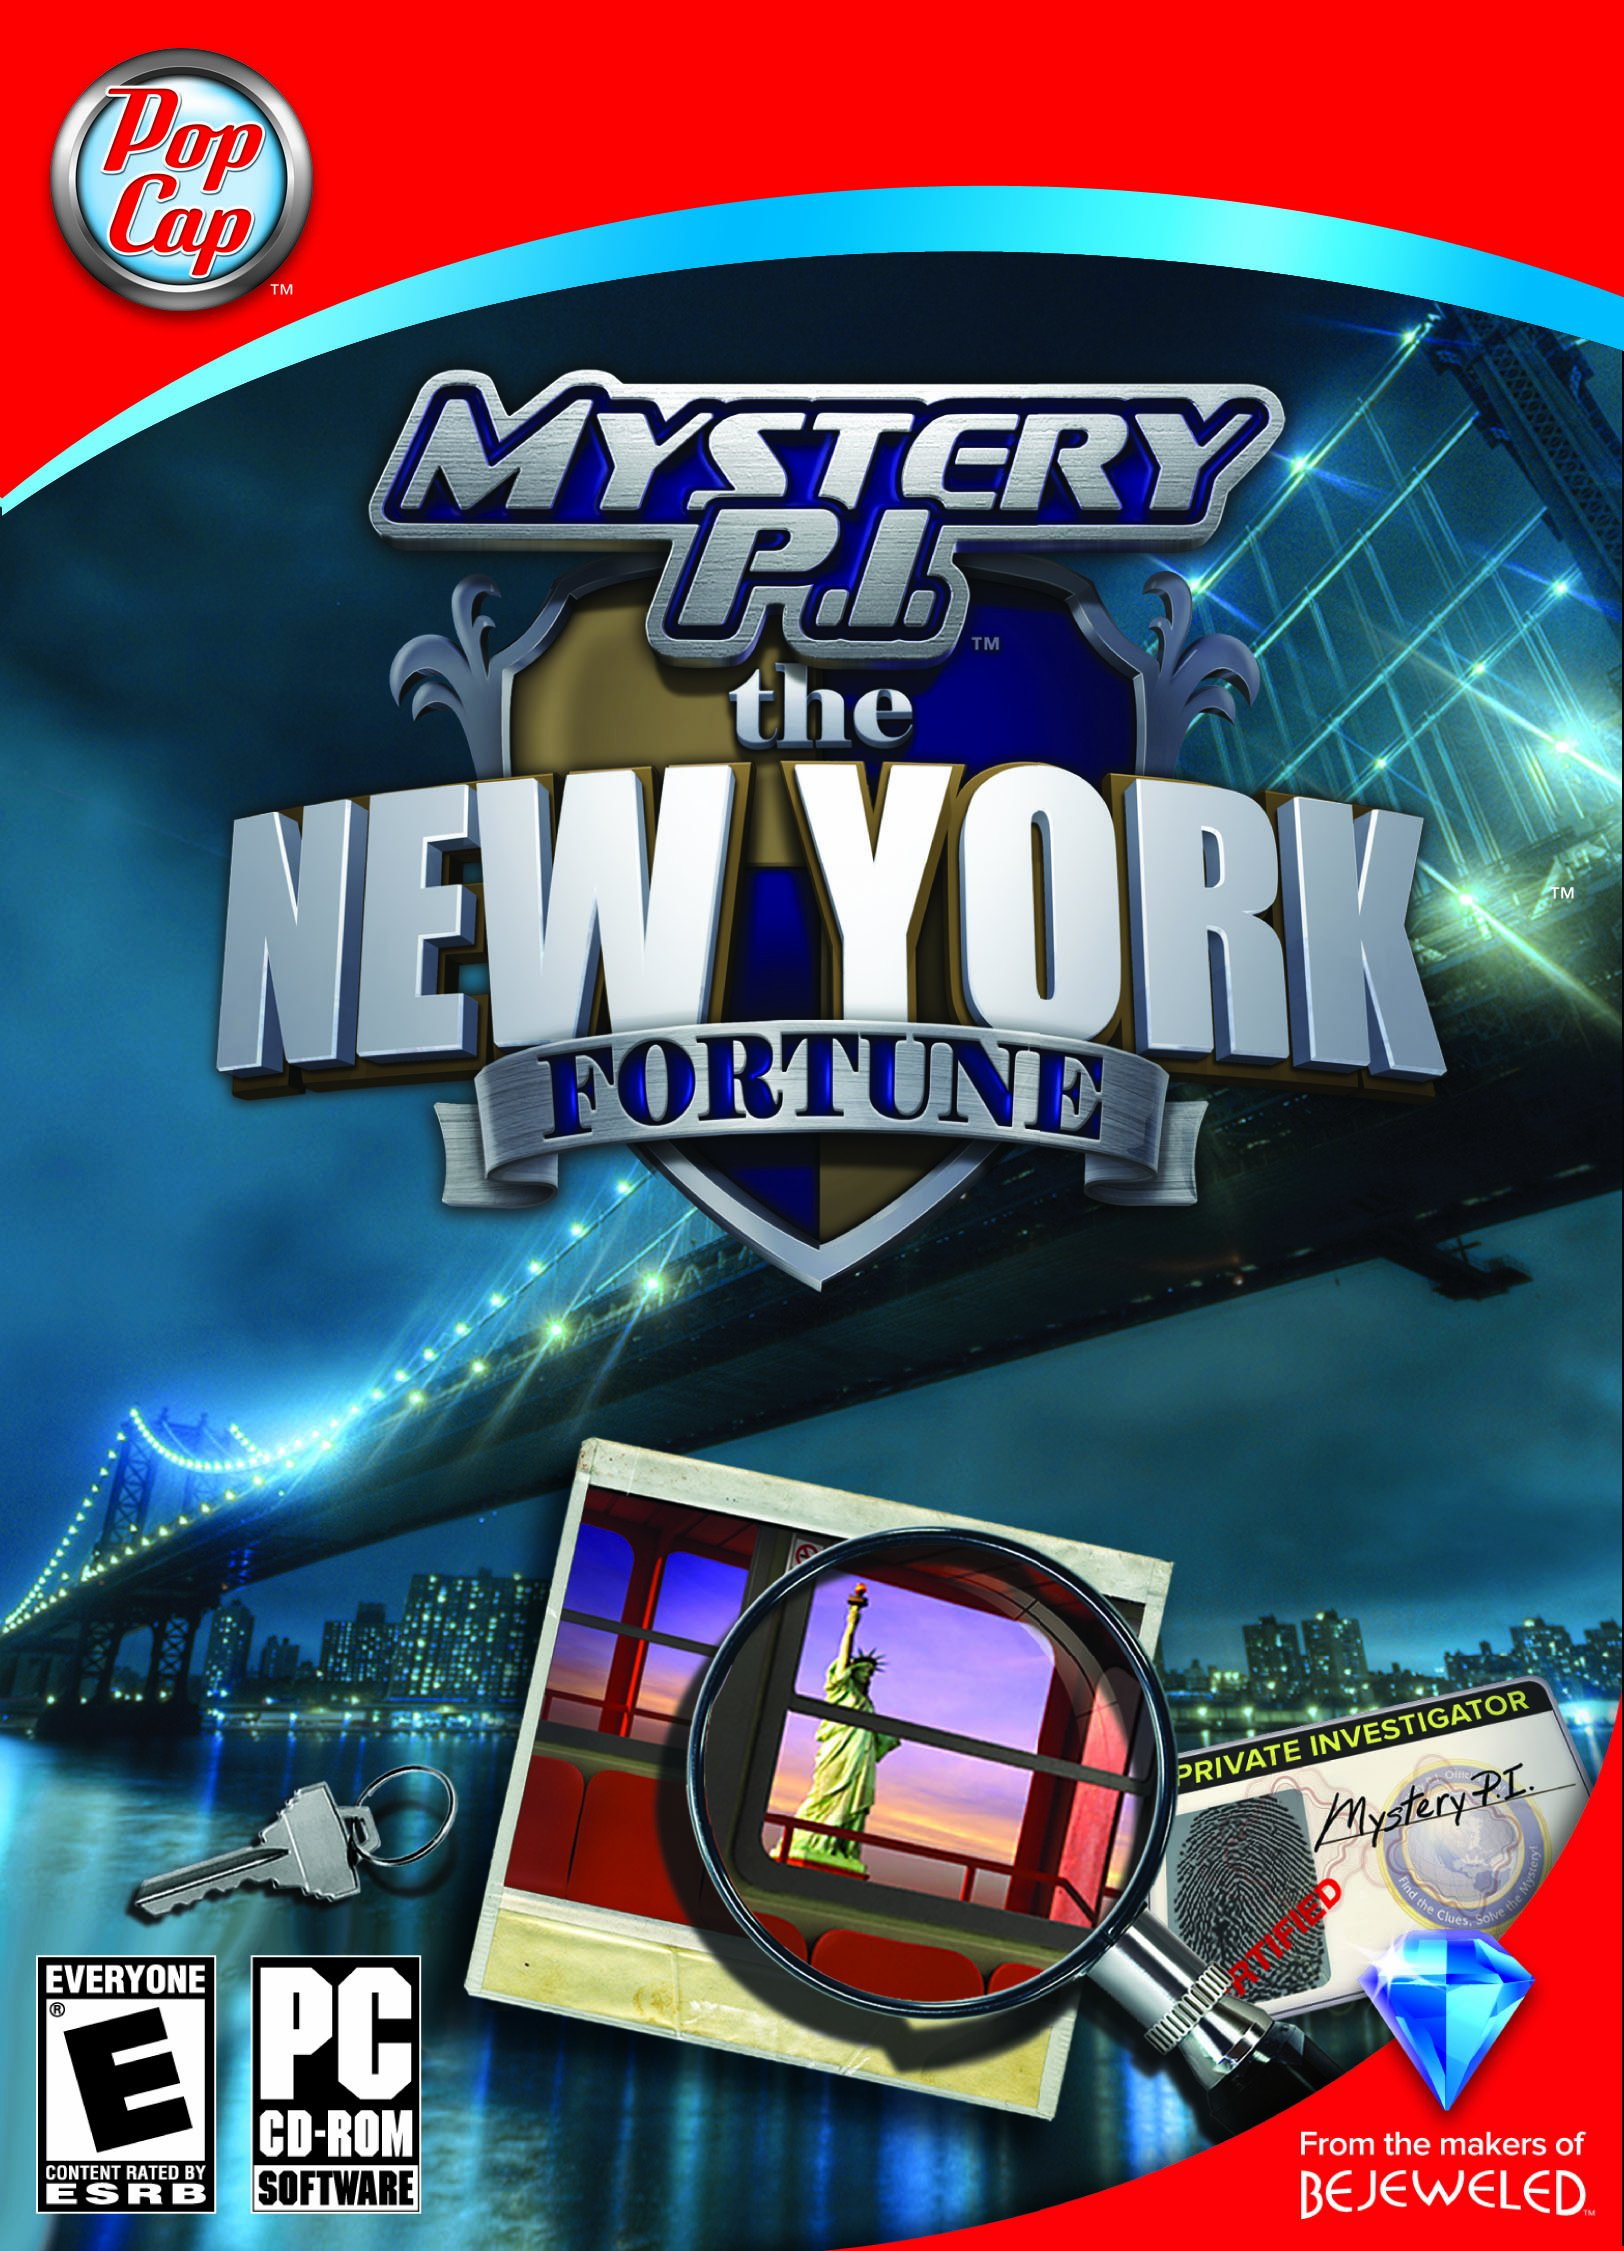 The Fortune Teller: Mystery P.I.: The New York Fortune Release Date (PC